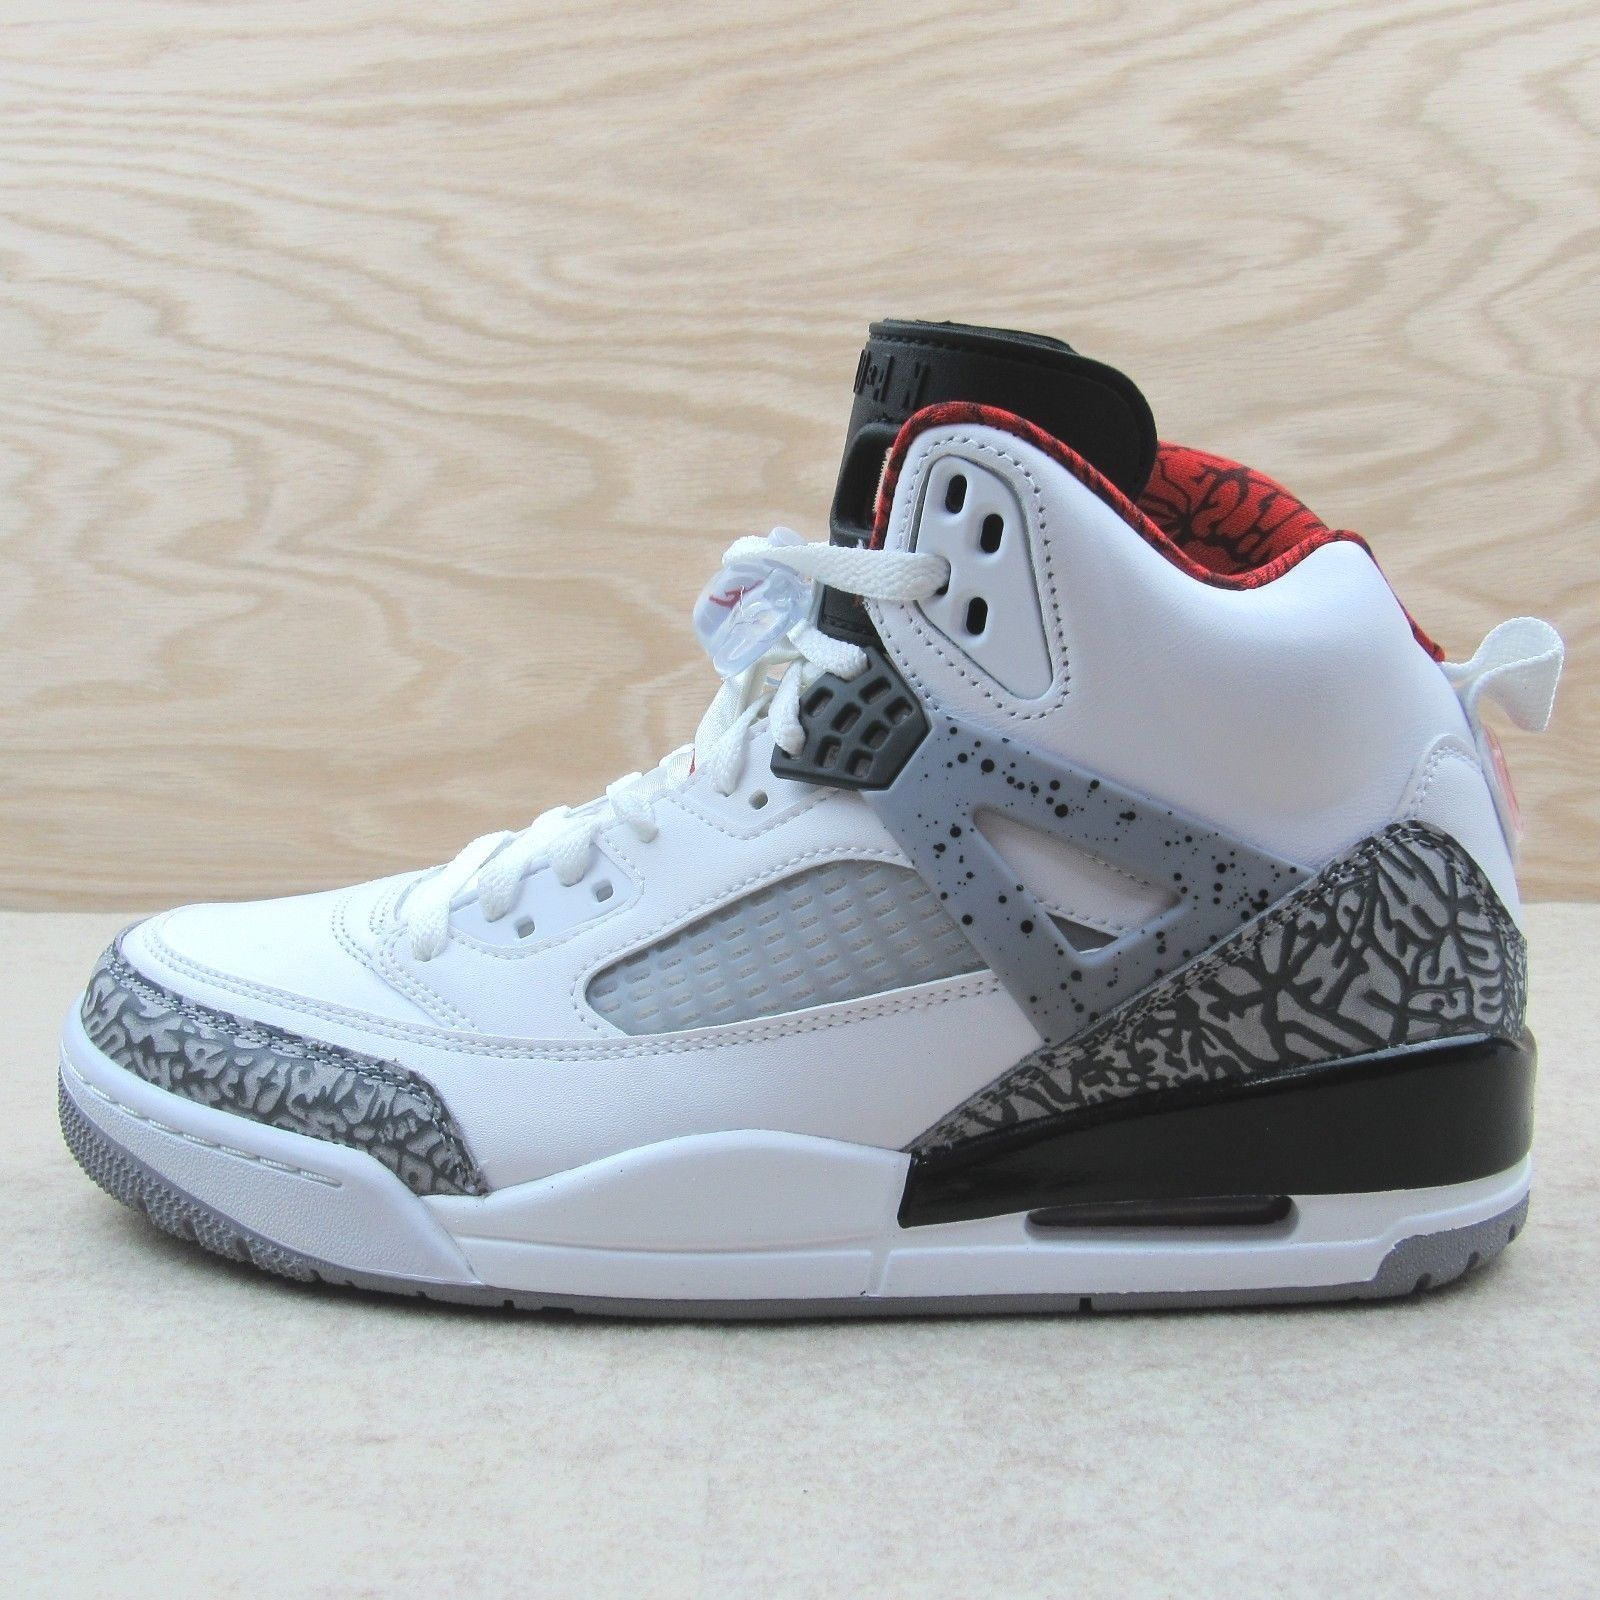 half off 1ebd5 a7161 Jordan Men s Spizike Size 9 Basketball Shoes and 41 similar items. 57